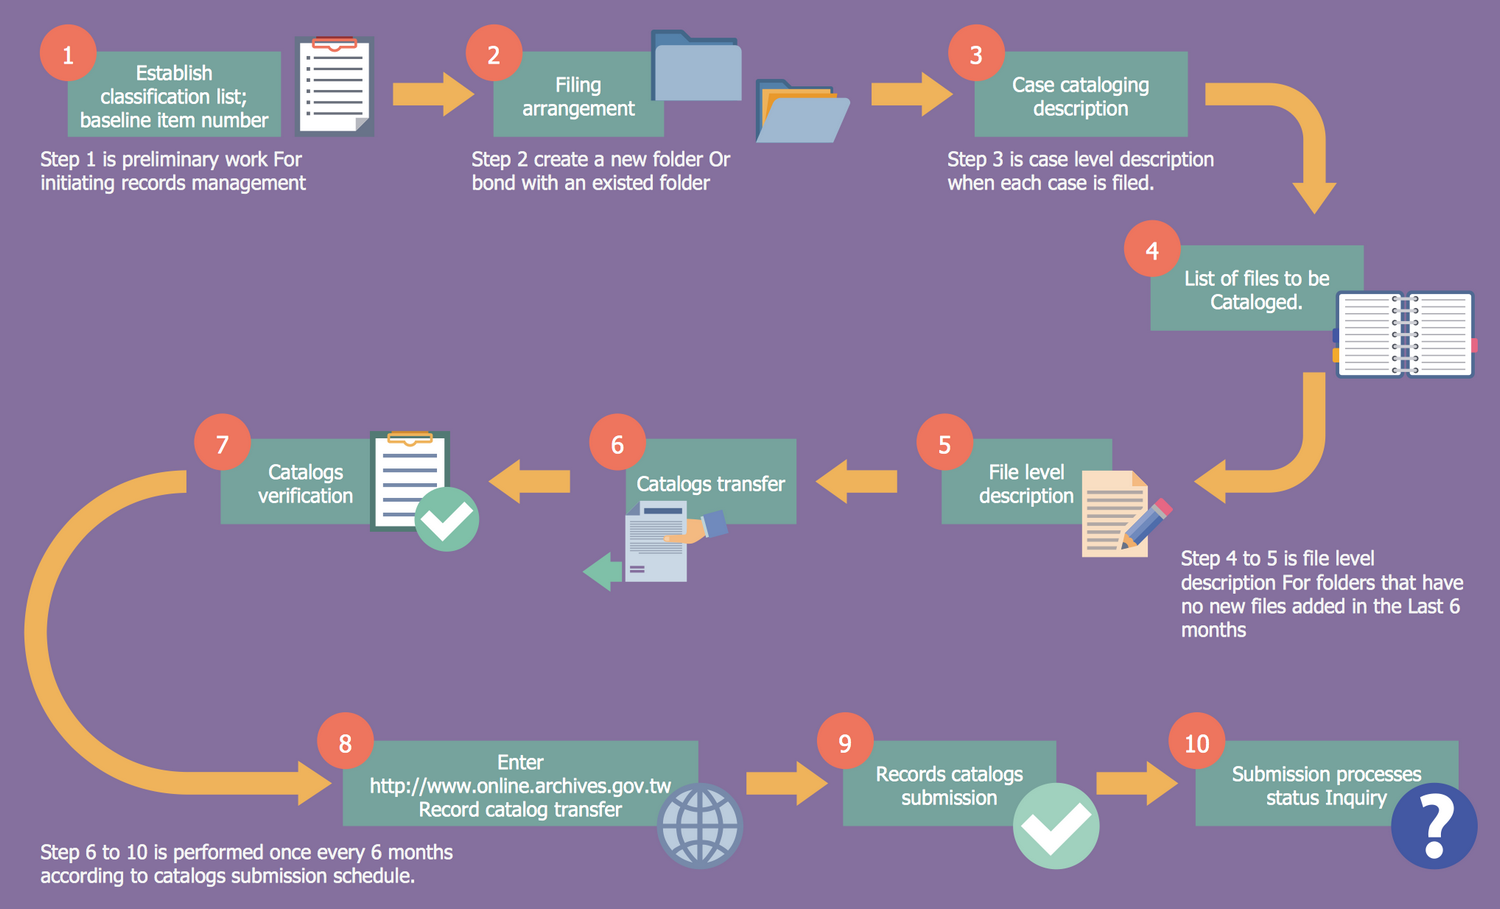 Business Process Workflow Diagram - Government Records Cataloging Flow